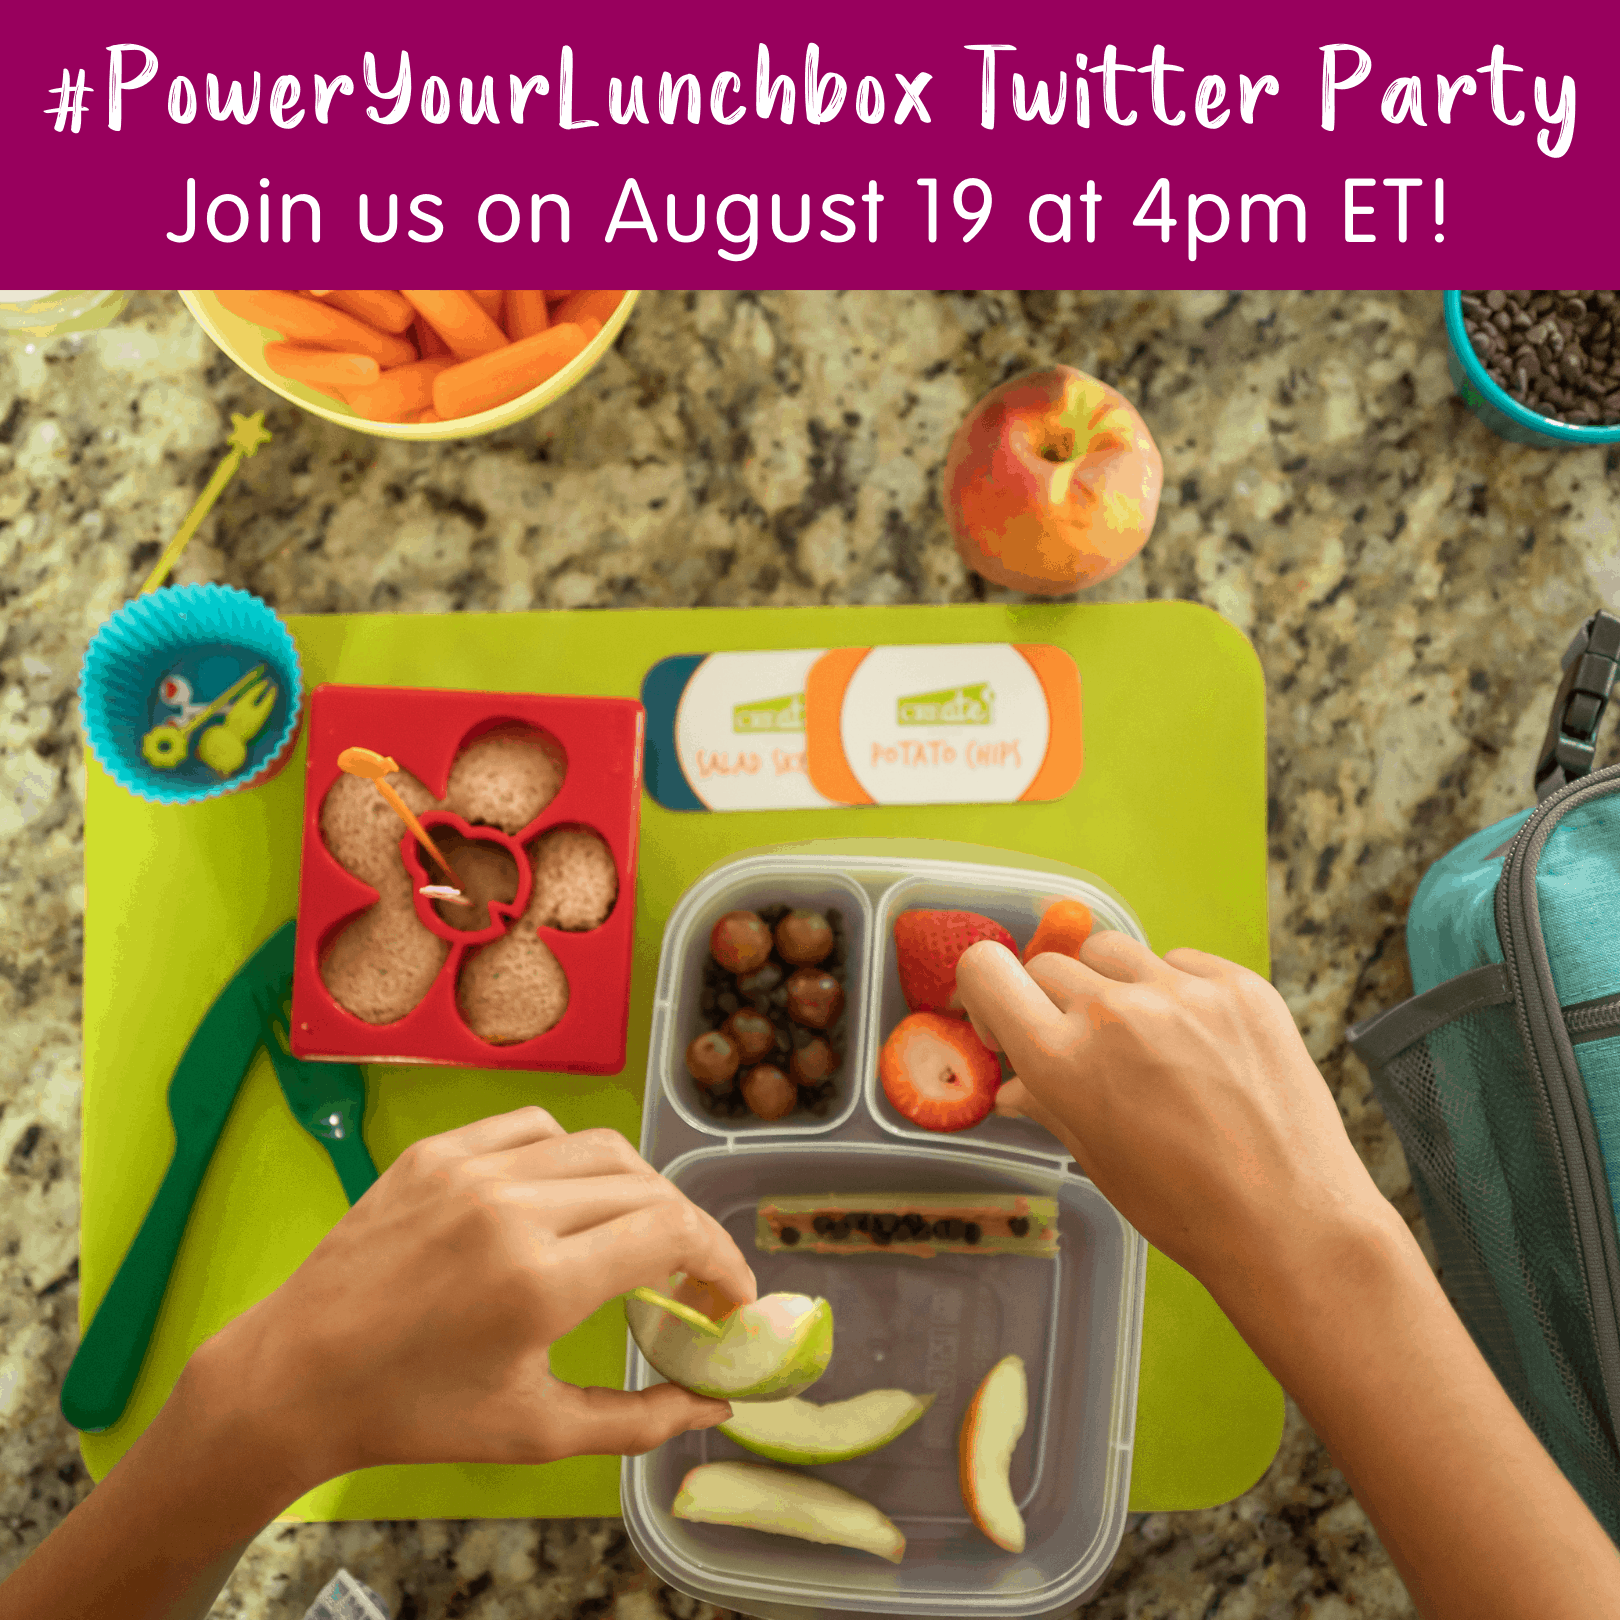 Lunchbox with sandwich cutout, fruits and vegetables with hands assembling and text overlay about Twitter party for ideas about packing kids lunch.